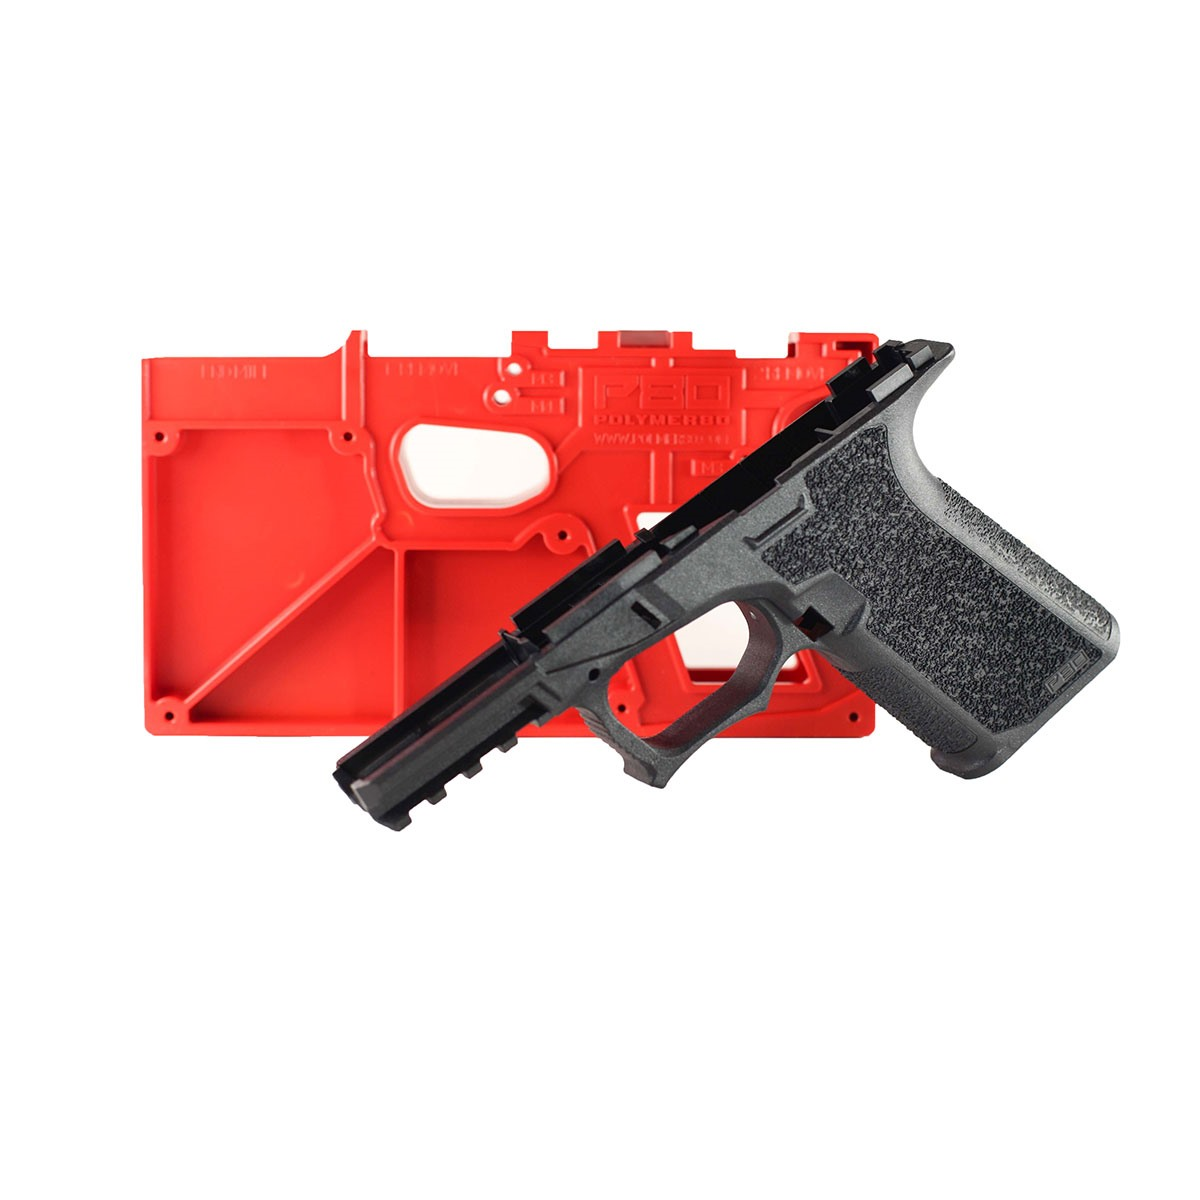 POLYMER80 - PF940Cv1 80% FRAME TEXTURED FOR GLOCK® 19/23/32